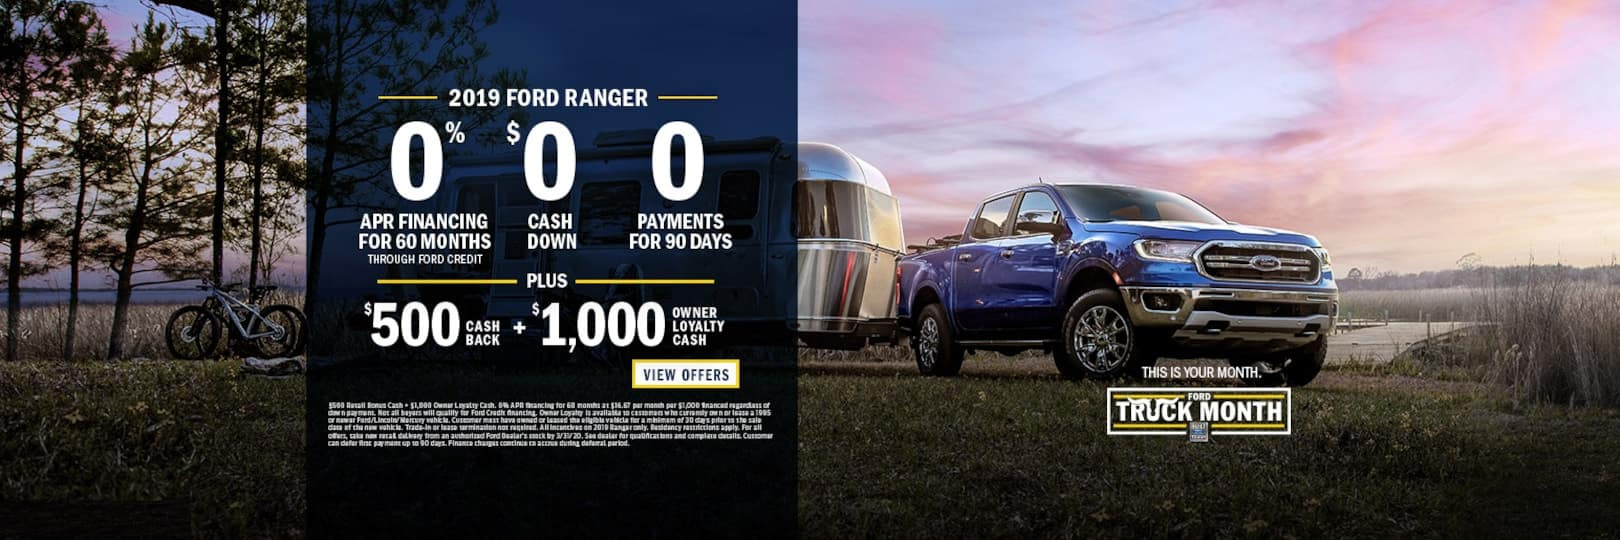 2019_Ford_Ranger_Bayer_Auto_Group